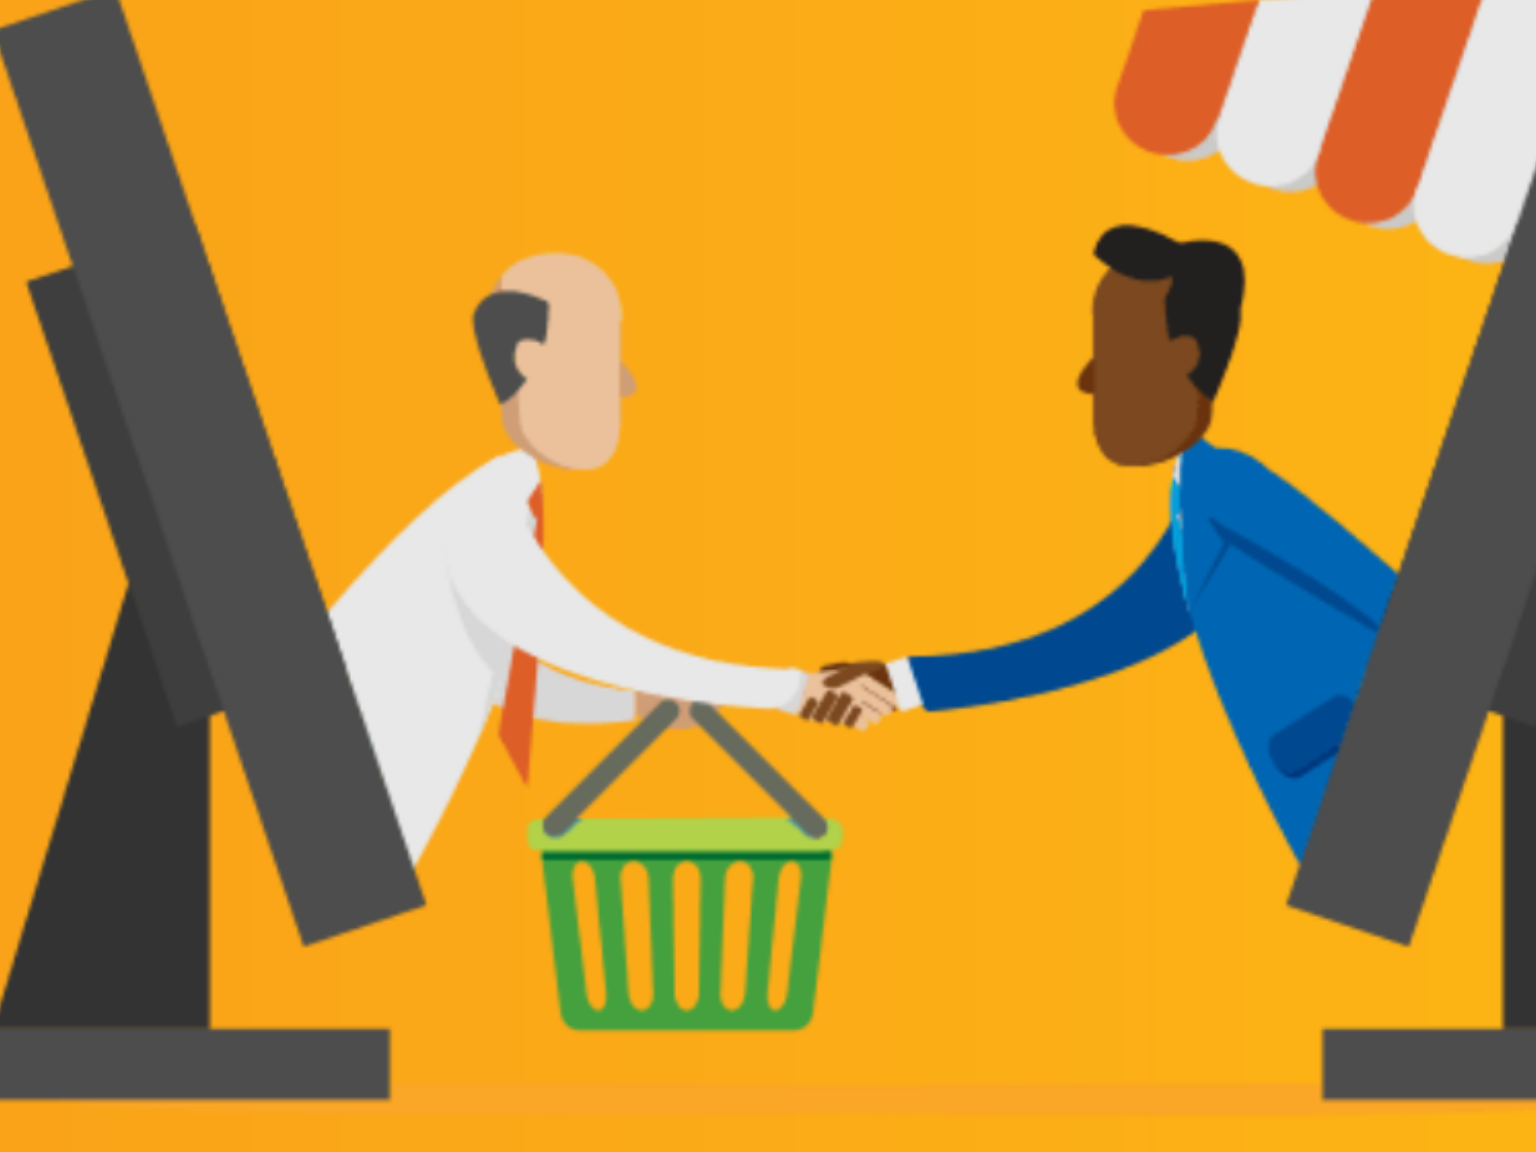 A buyer and a seller shaking hands after a transaction.